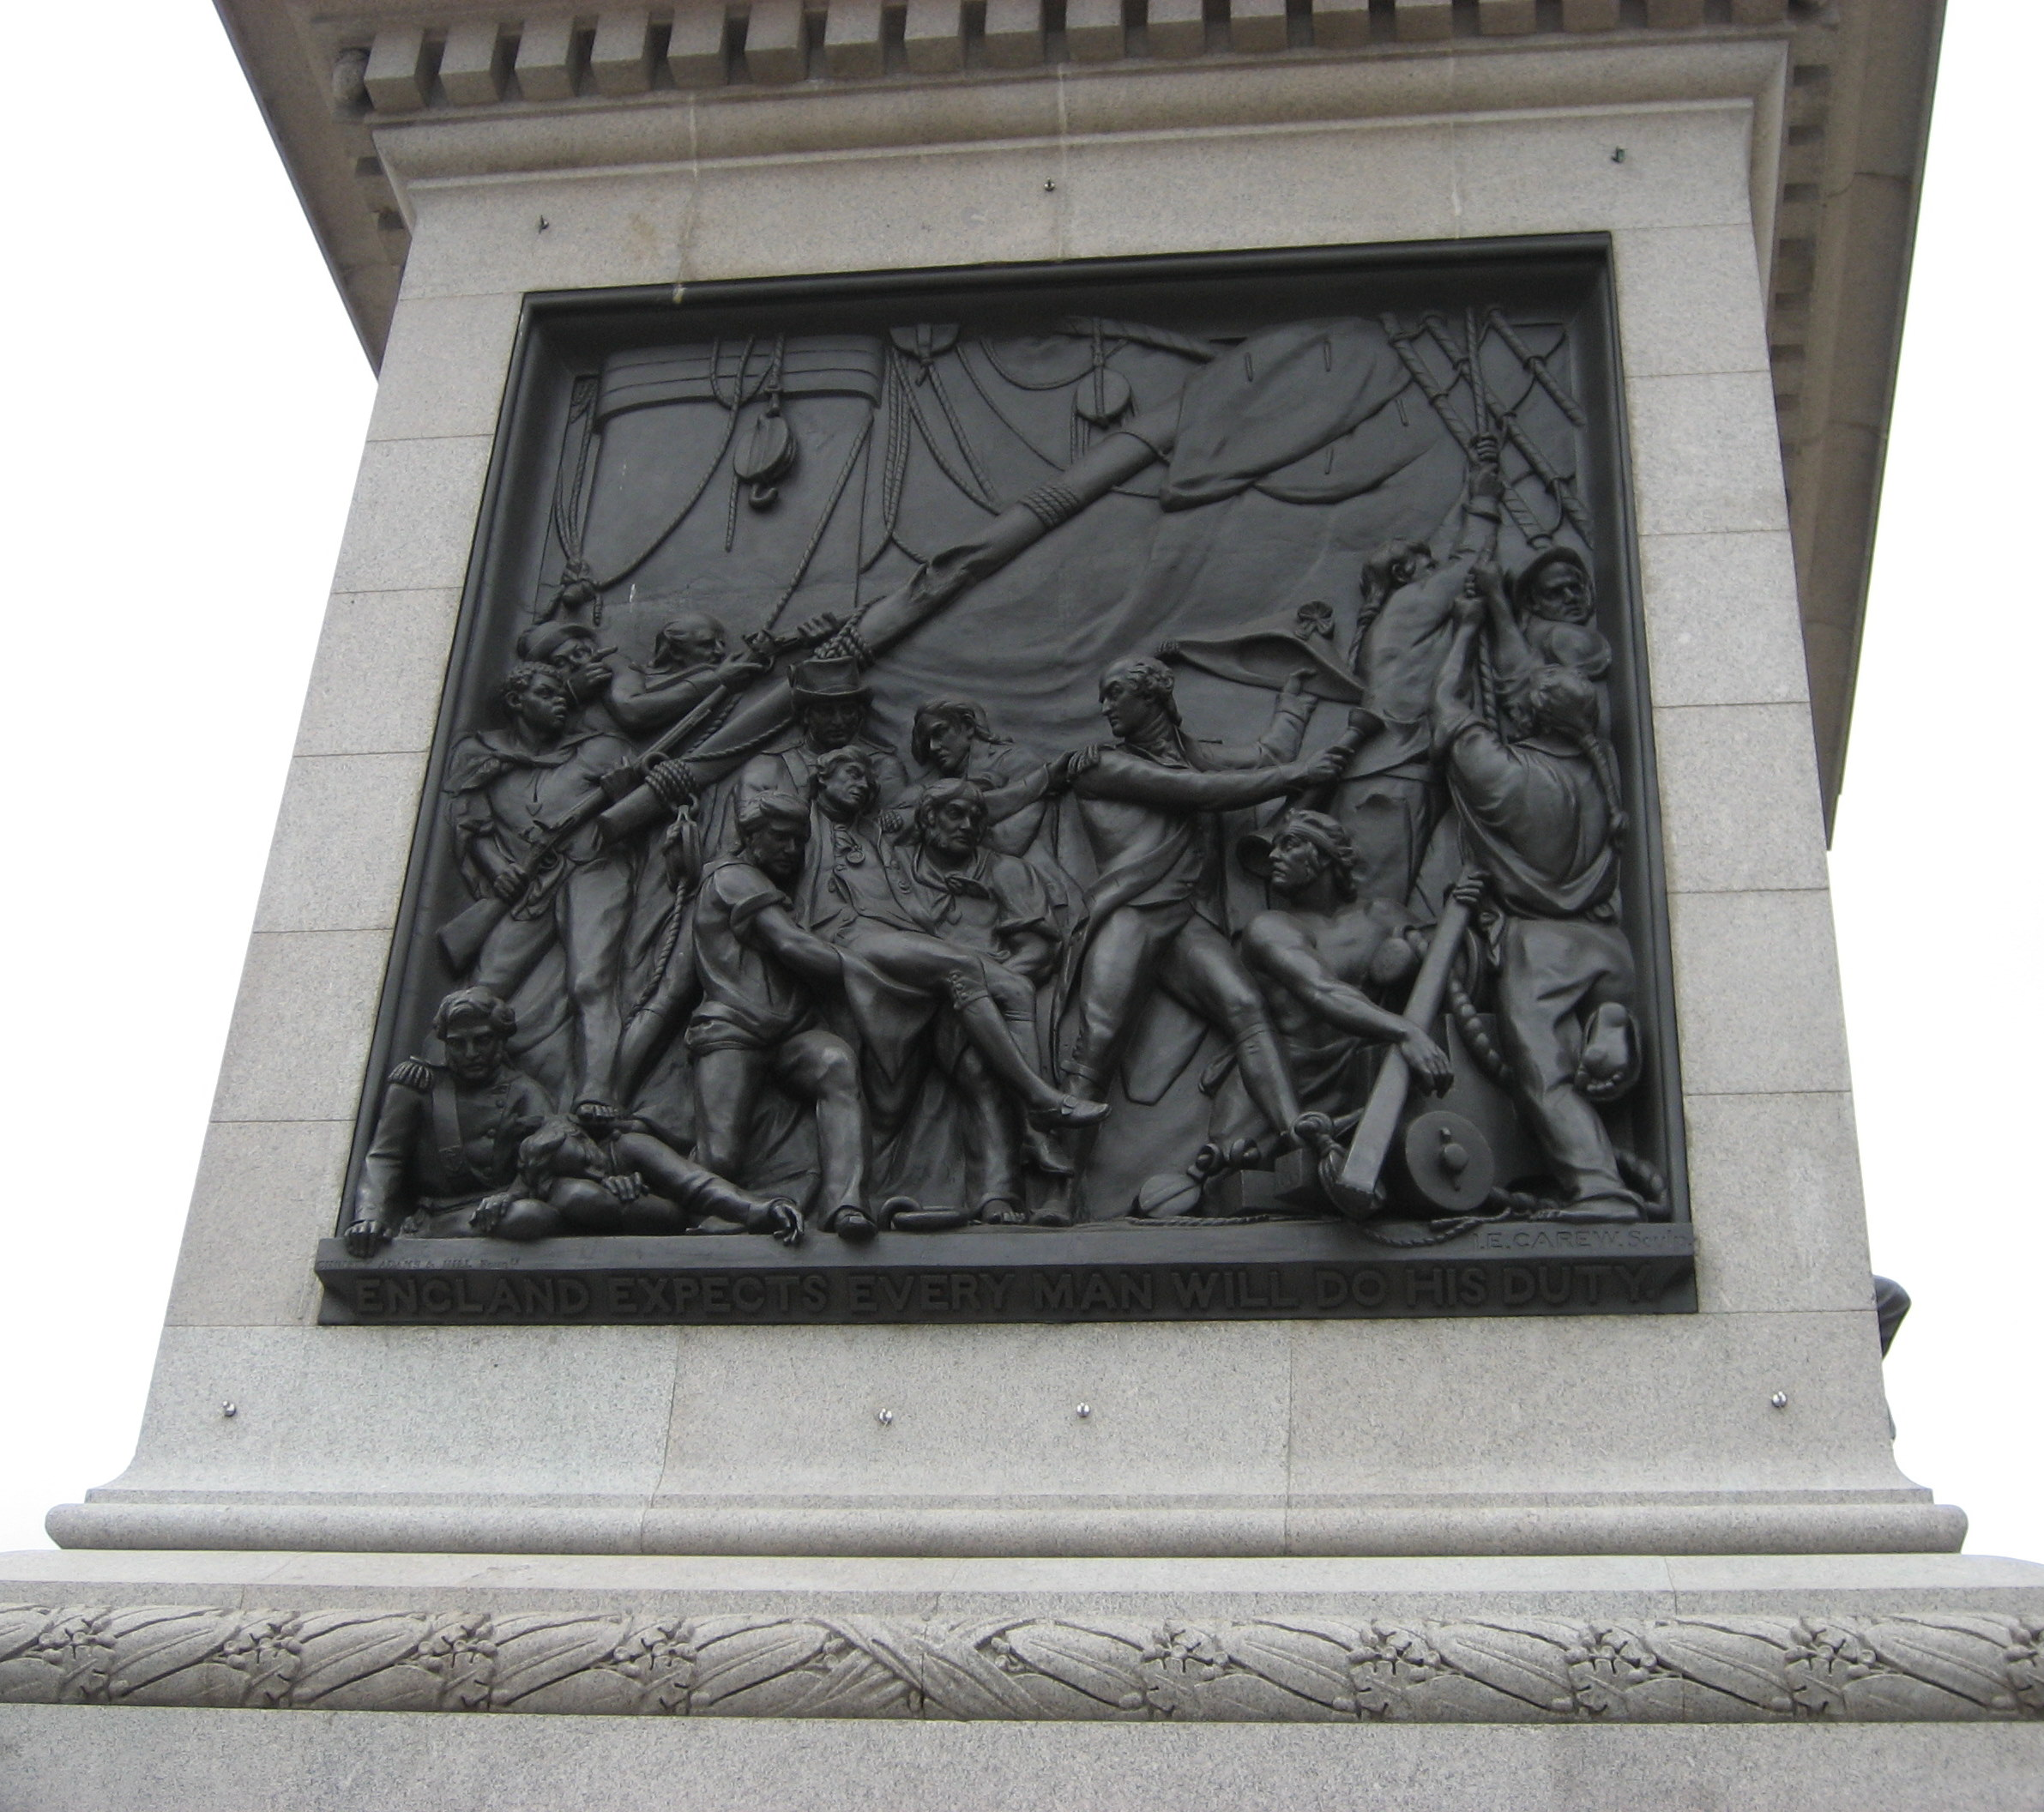 George Ryan, pictured in bas relief at the base of Nelson's Column, London